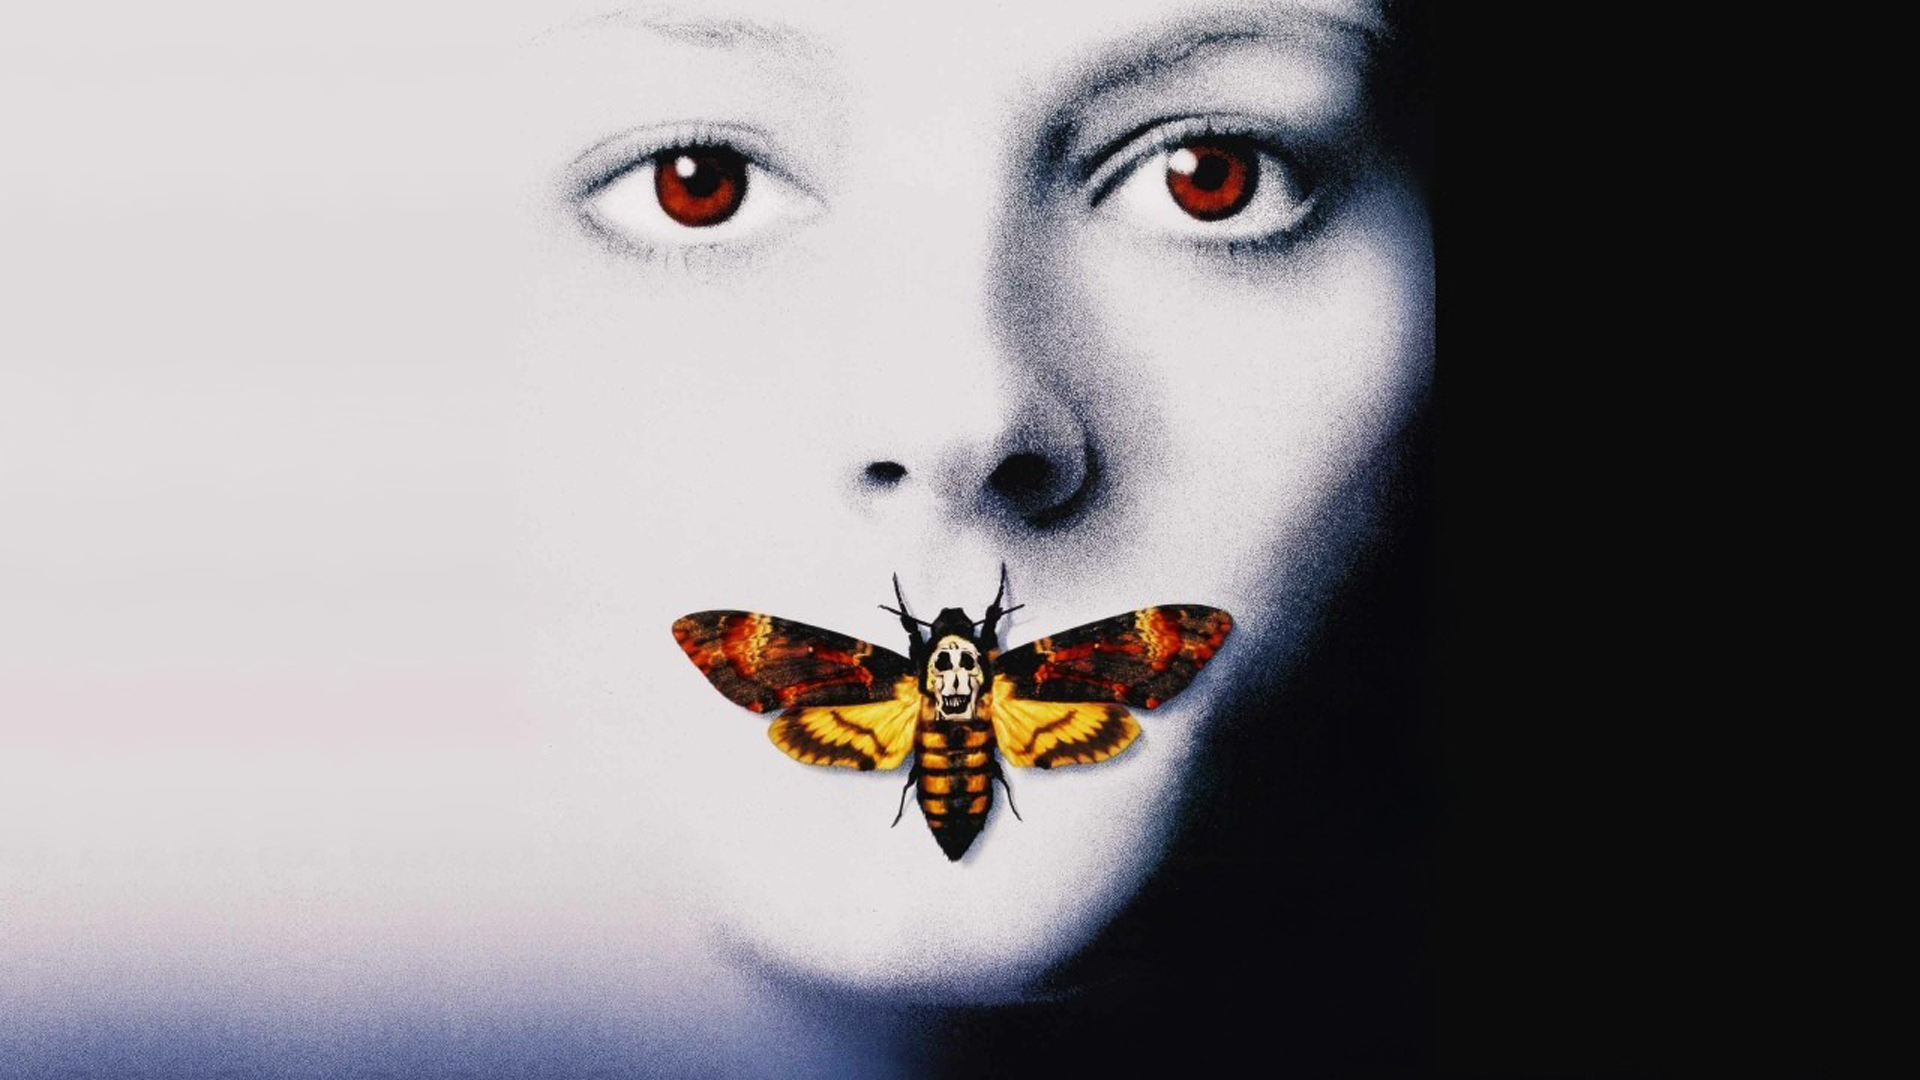 Download The Silence of the Lambs HD Wallpaper [1920x1080] 72 1920x1080